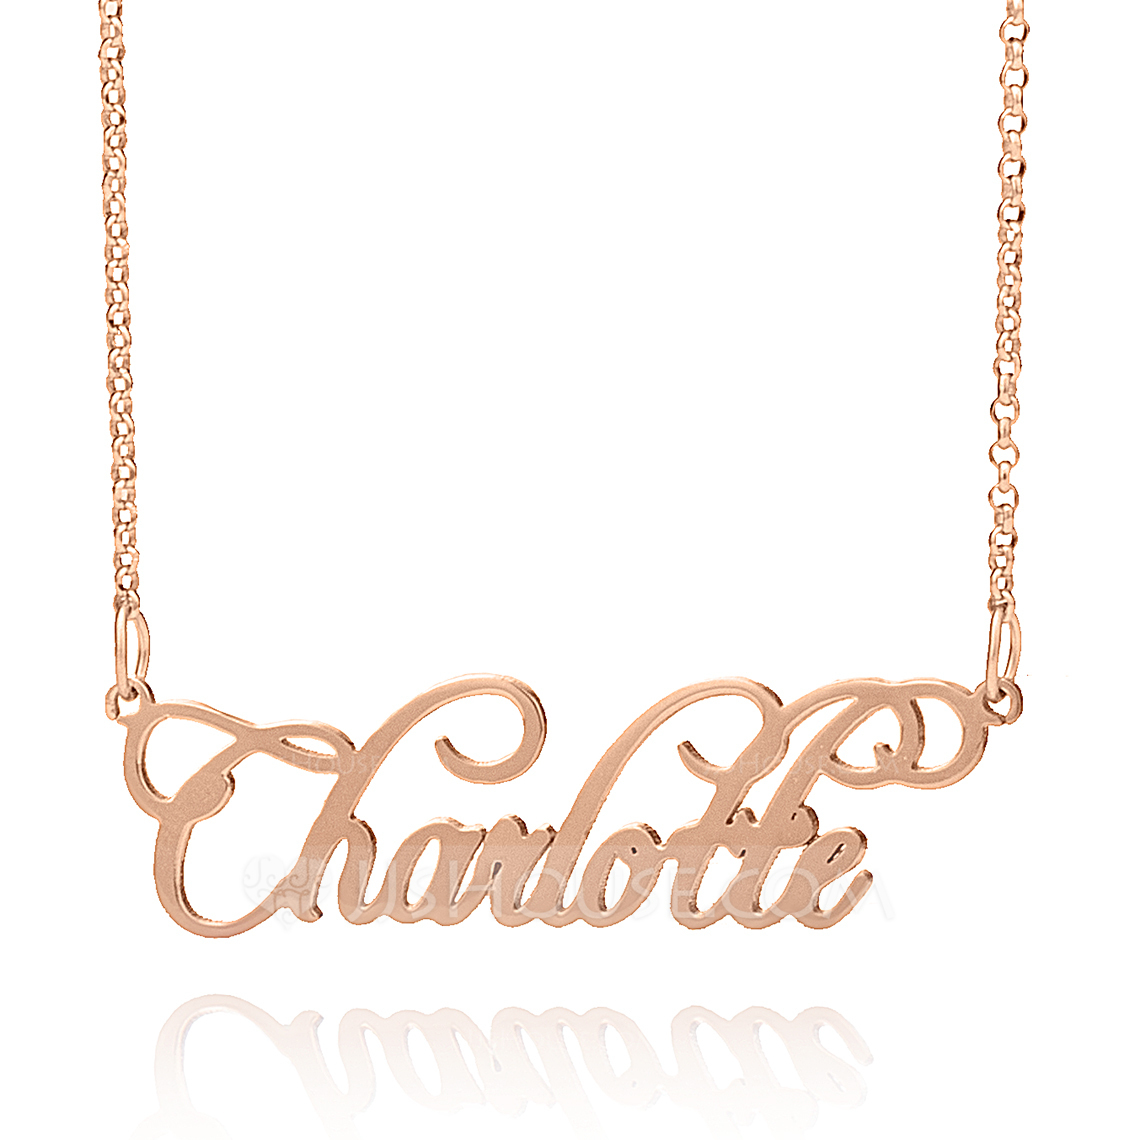 Custom 18k Rose Gold Plated Silver Old English Cursive Name Necklace - Valentines Gifts